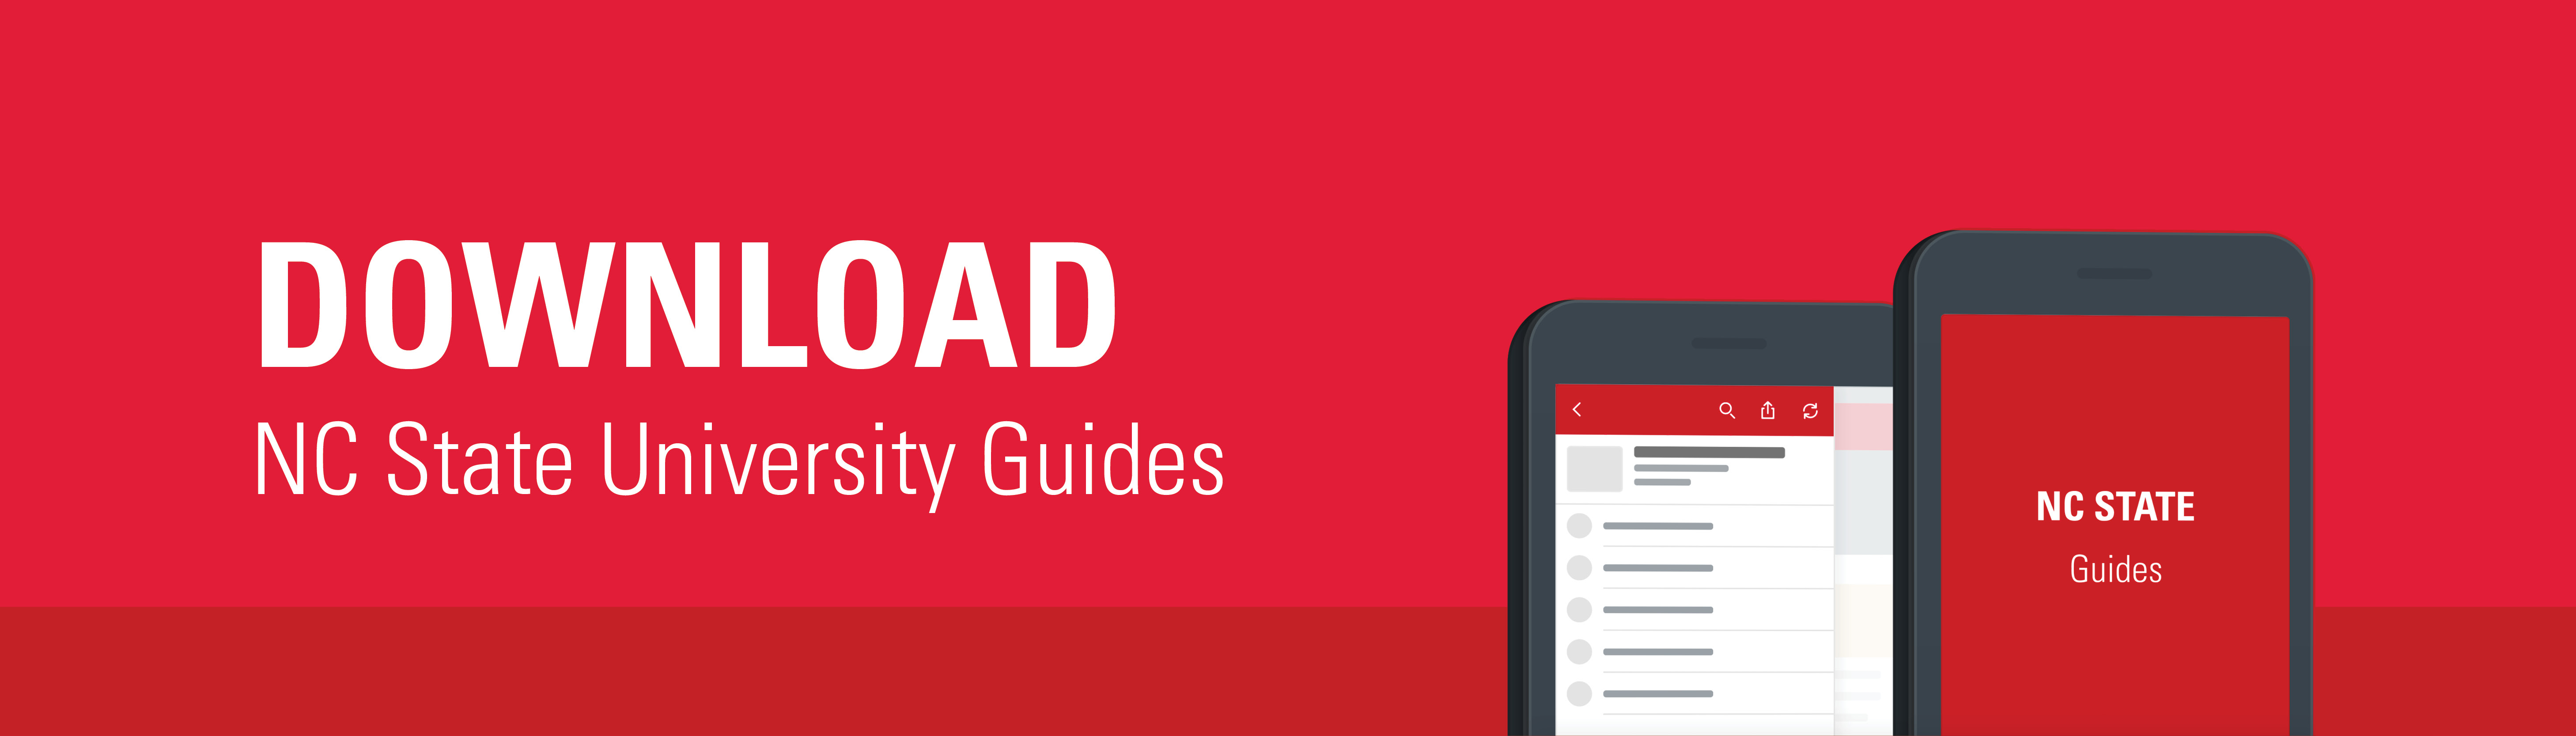 Download NC State Guides App Banner